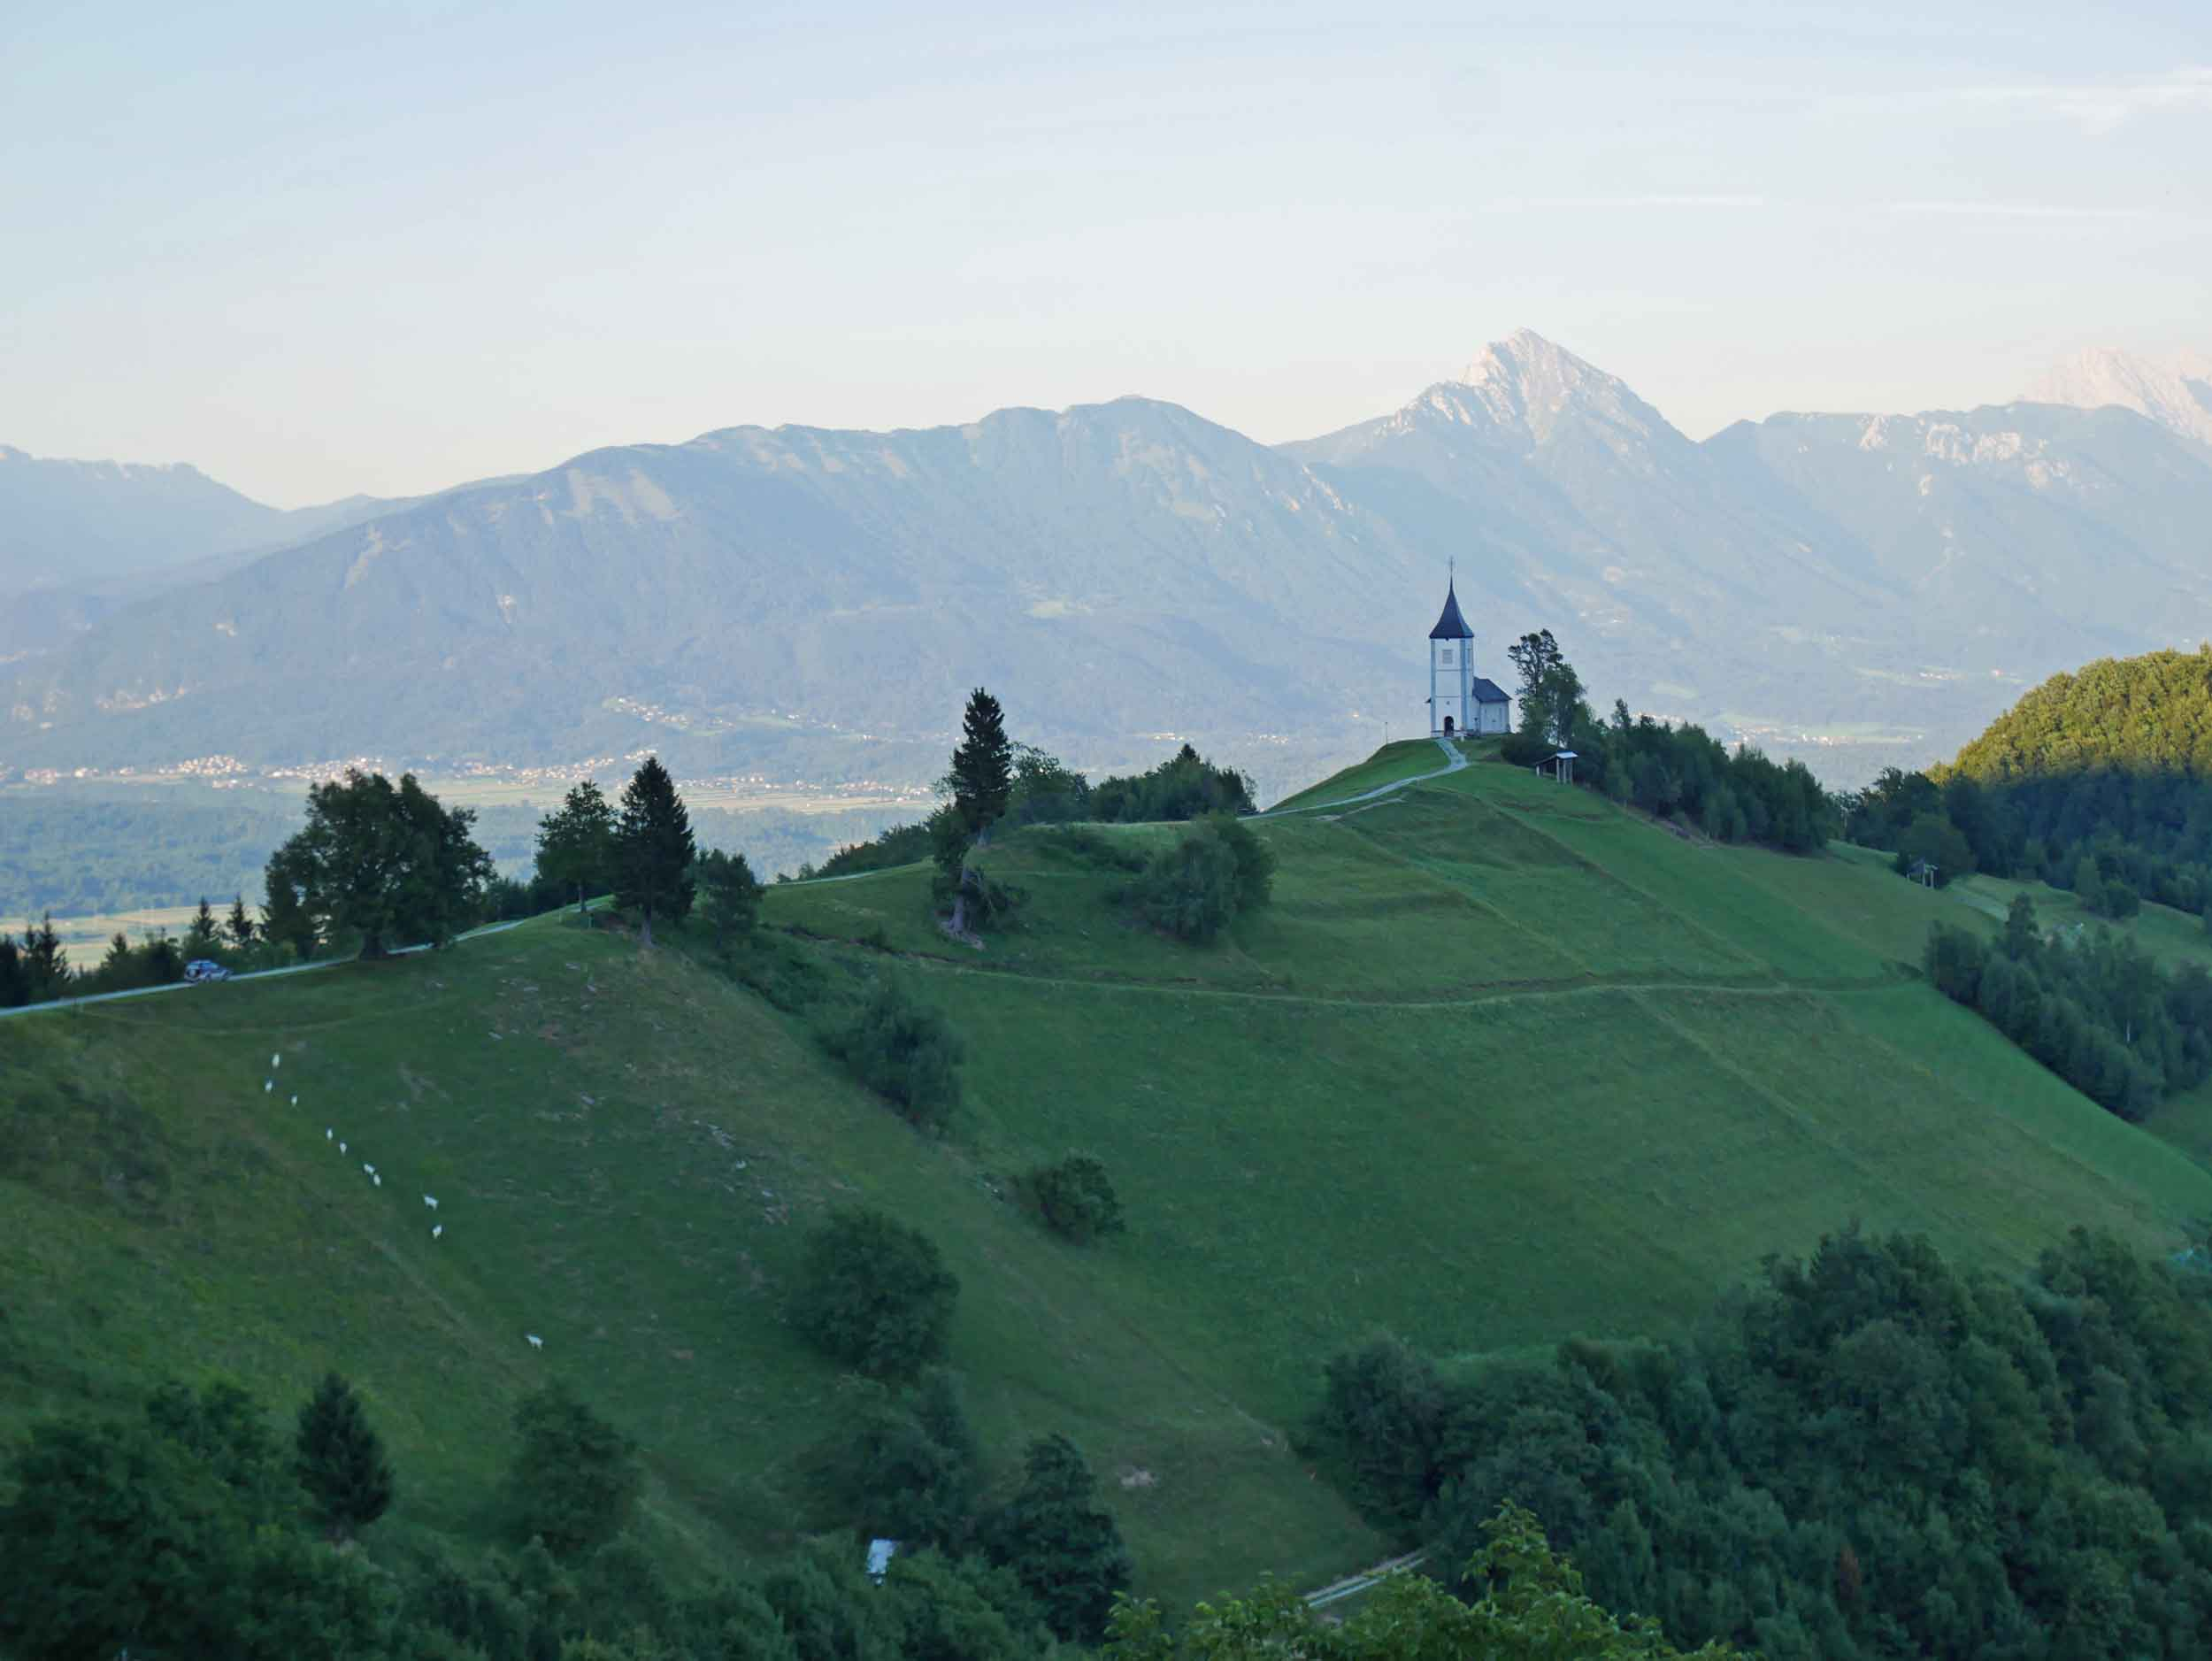 The lush green rolling hills and Alpine scenery of Slovenia was a drastic contrast to the dry and arid landscape from which we'd come.